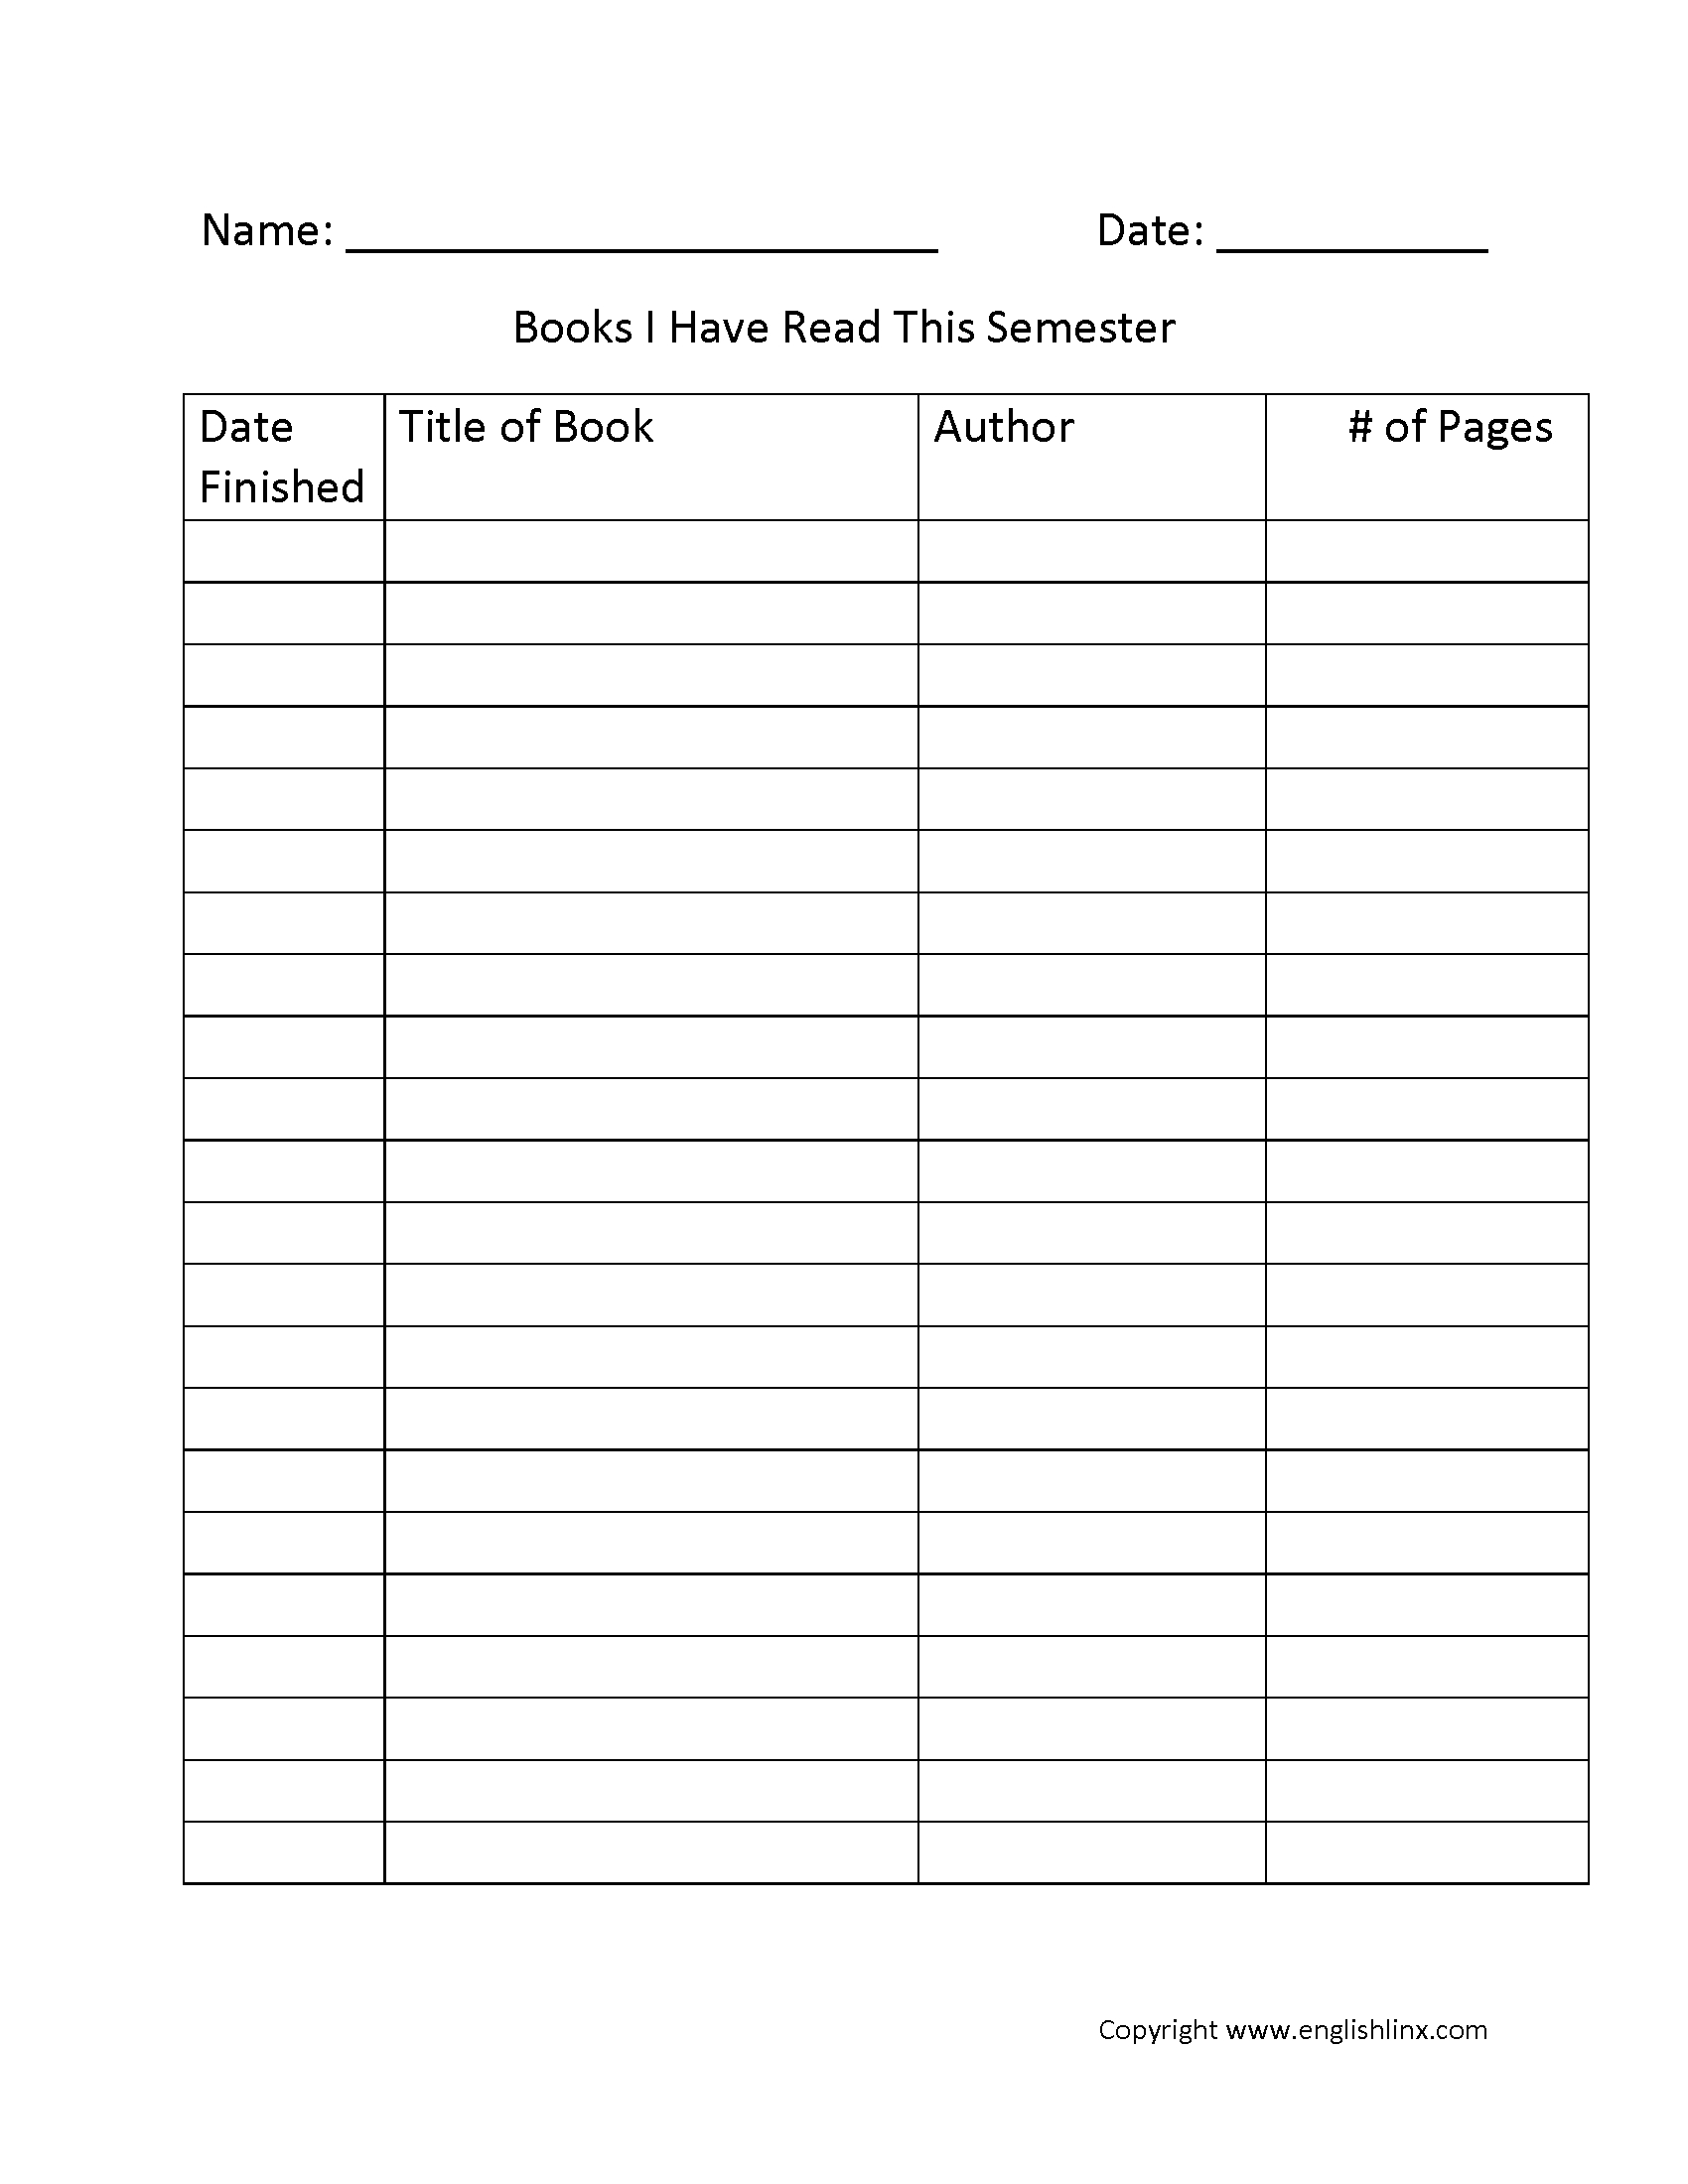 Printable Reading Log 4th Grade Template Calendar Design